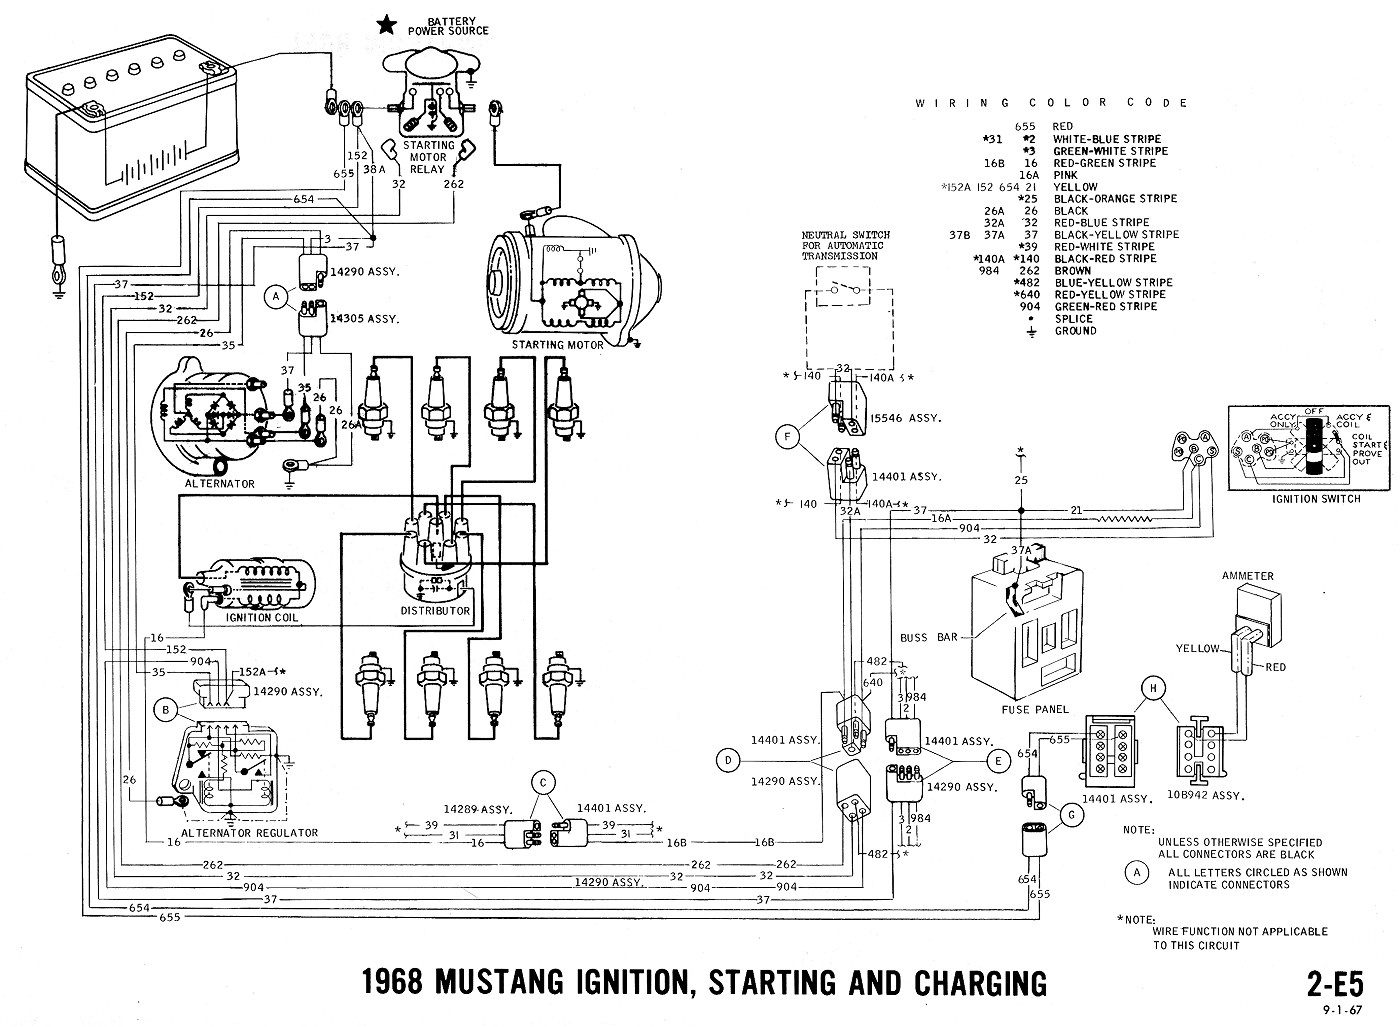 E5 1968 mustang wiring diagram 1968 mustang wiring diagram column 1969 ford mustang wiring diagram at mr168.co